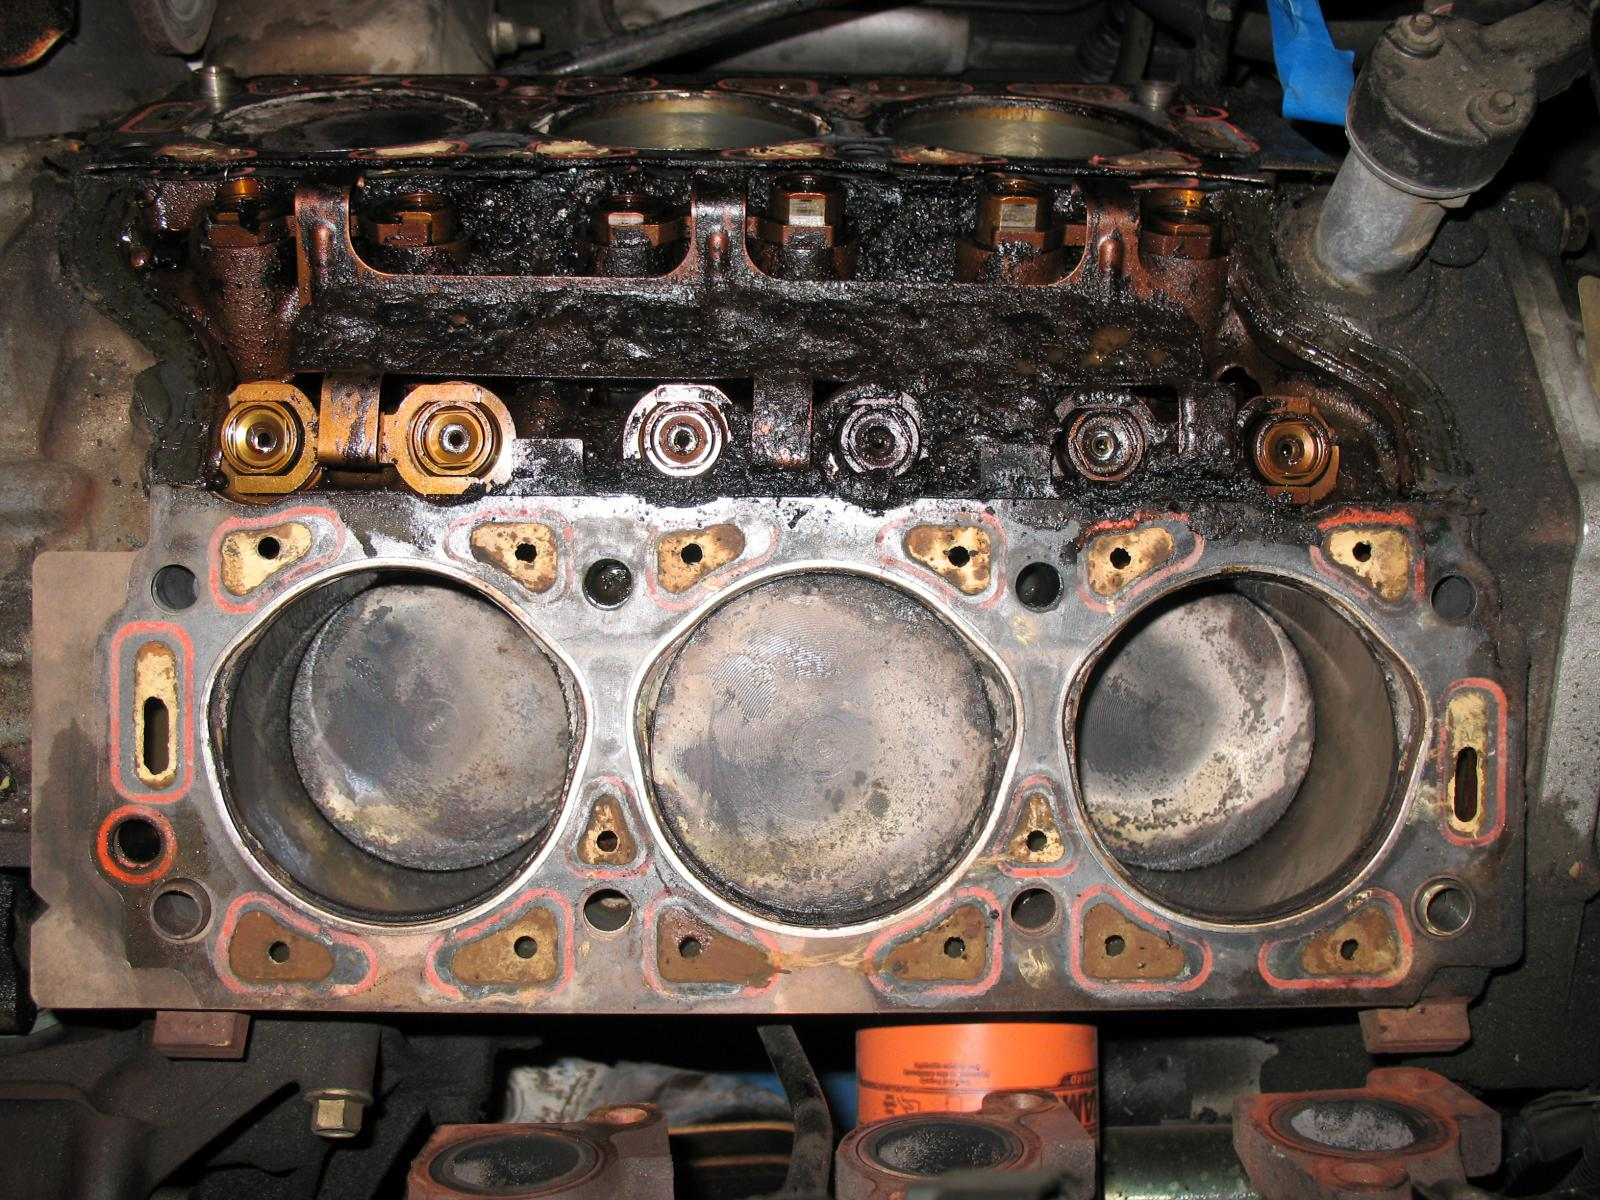 Symptoms Of A Blown Head Gasket Radiator Helpline Jeep Wrangler Leaking Coolant